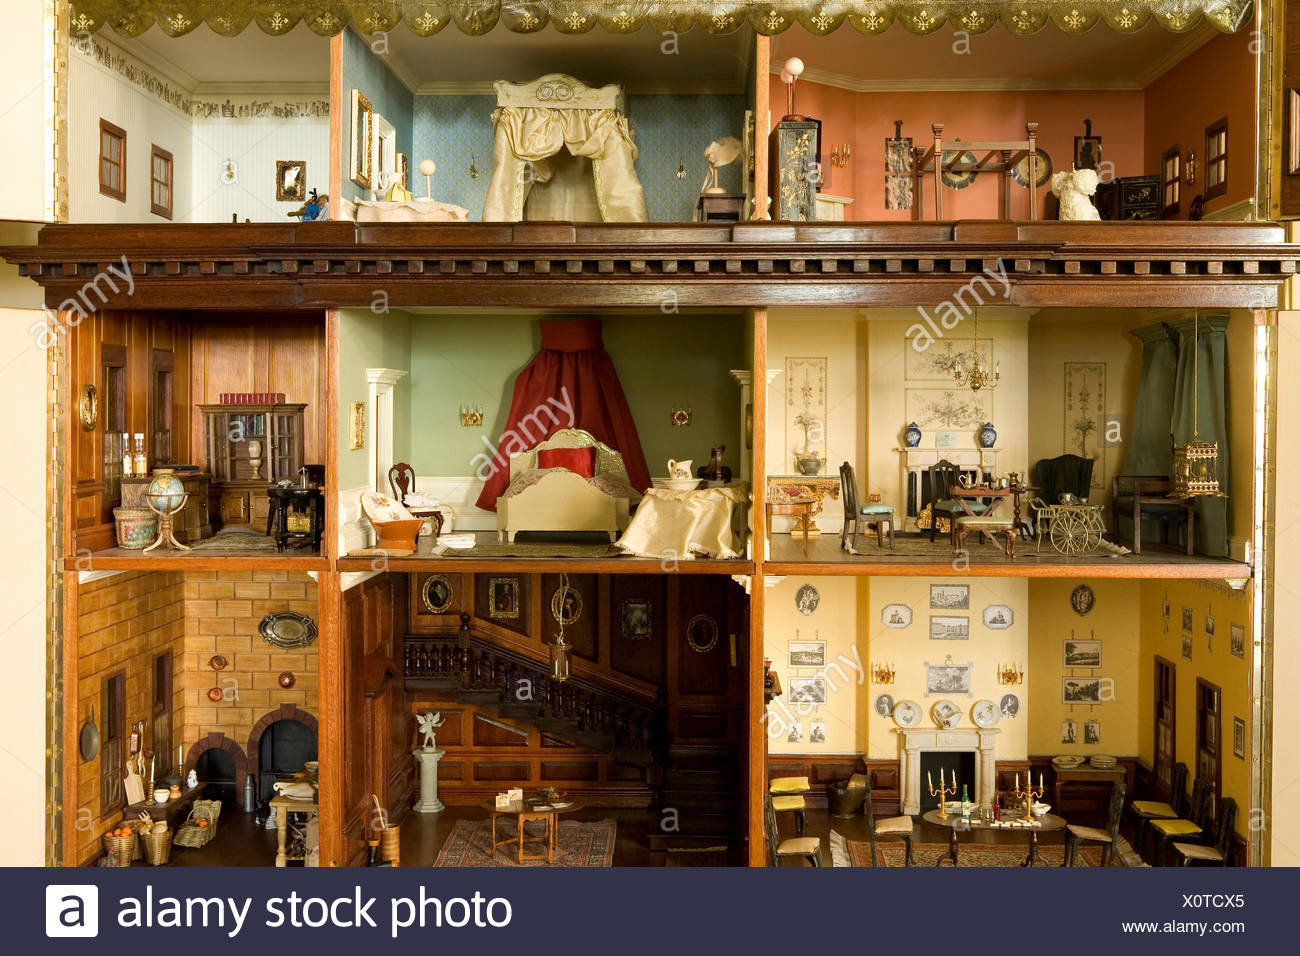 Close-up of the interior of a Victorian dolls' house - Stock Image